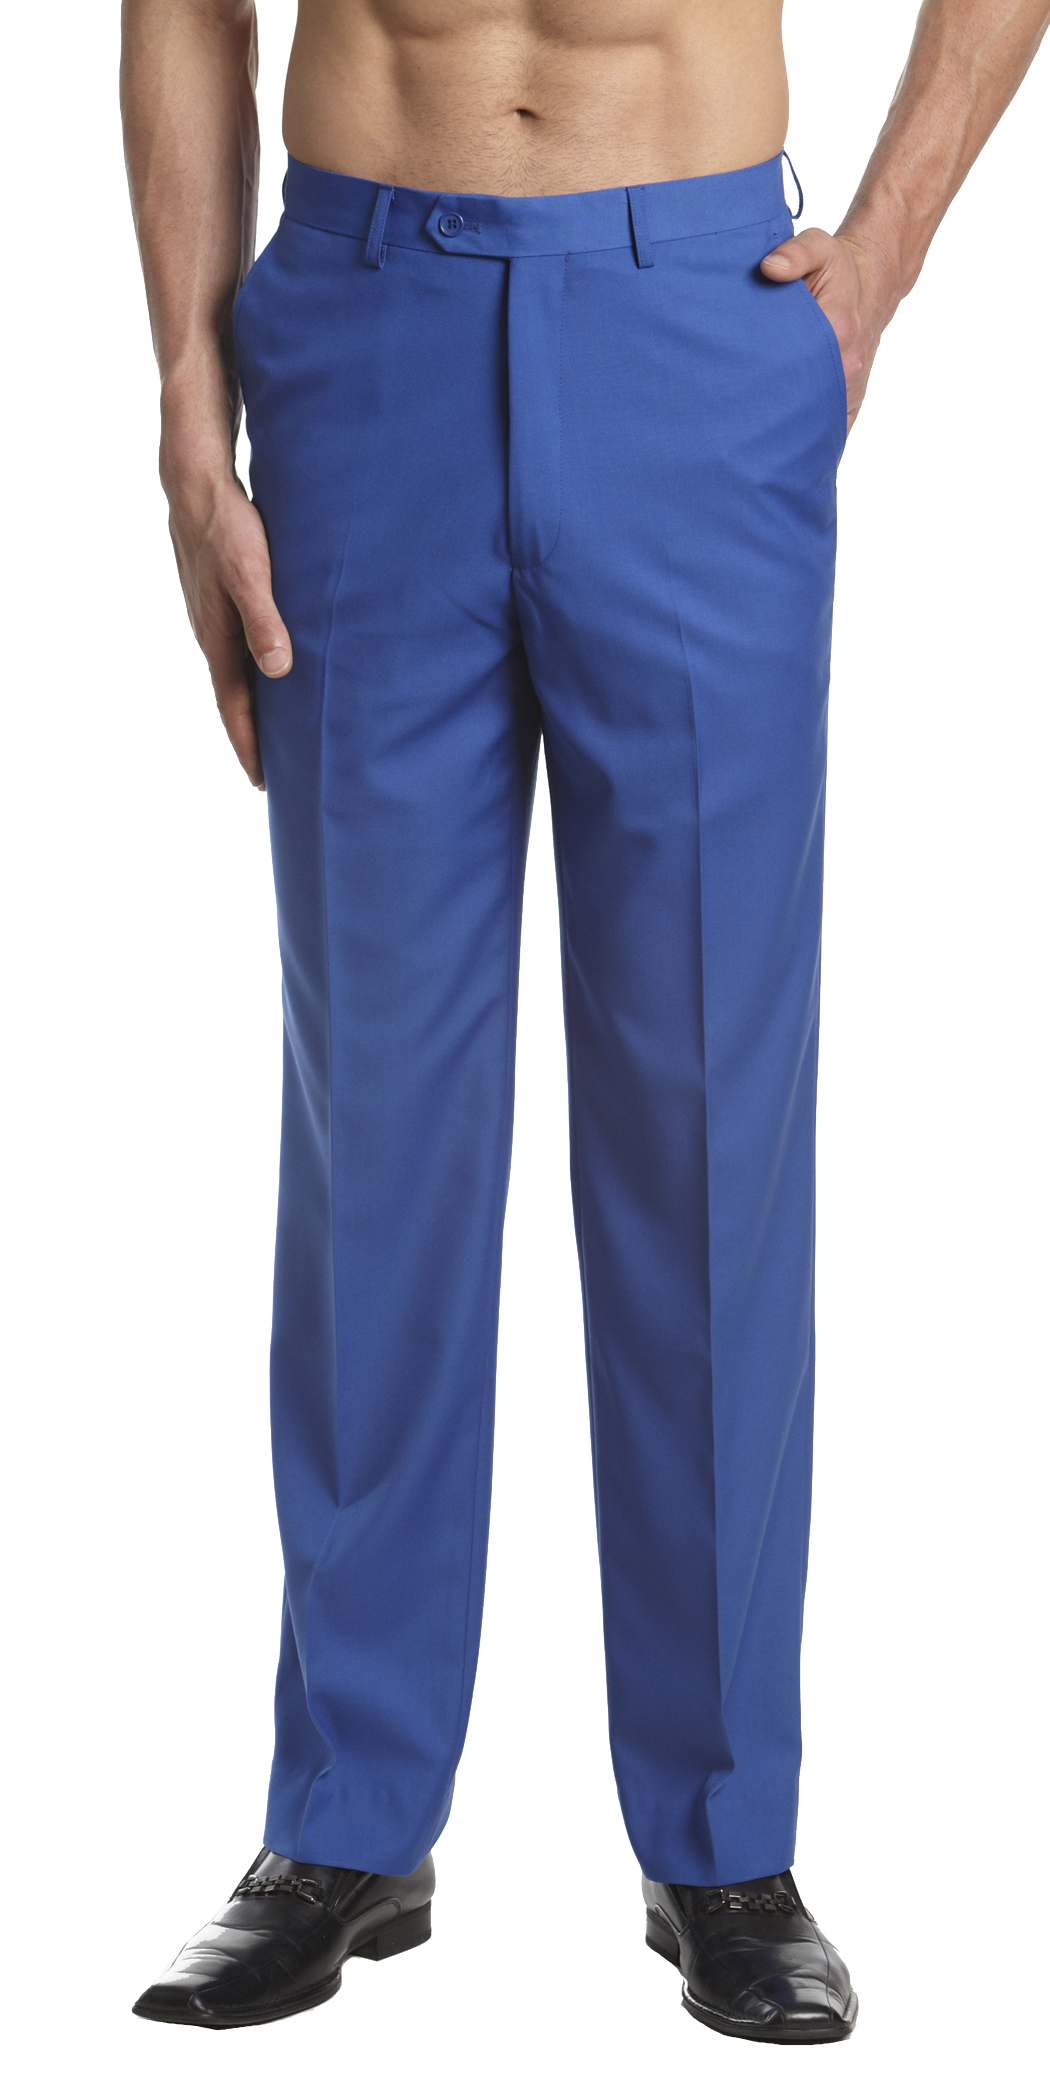 Shop stylish women's trouser pants at smileqbl.gq LOFT trouser pants are mid-rise, narrow through the hip & thigh with a leg that's not too slim or too wide. Live in what you love - shop smileqbl.gq today!